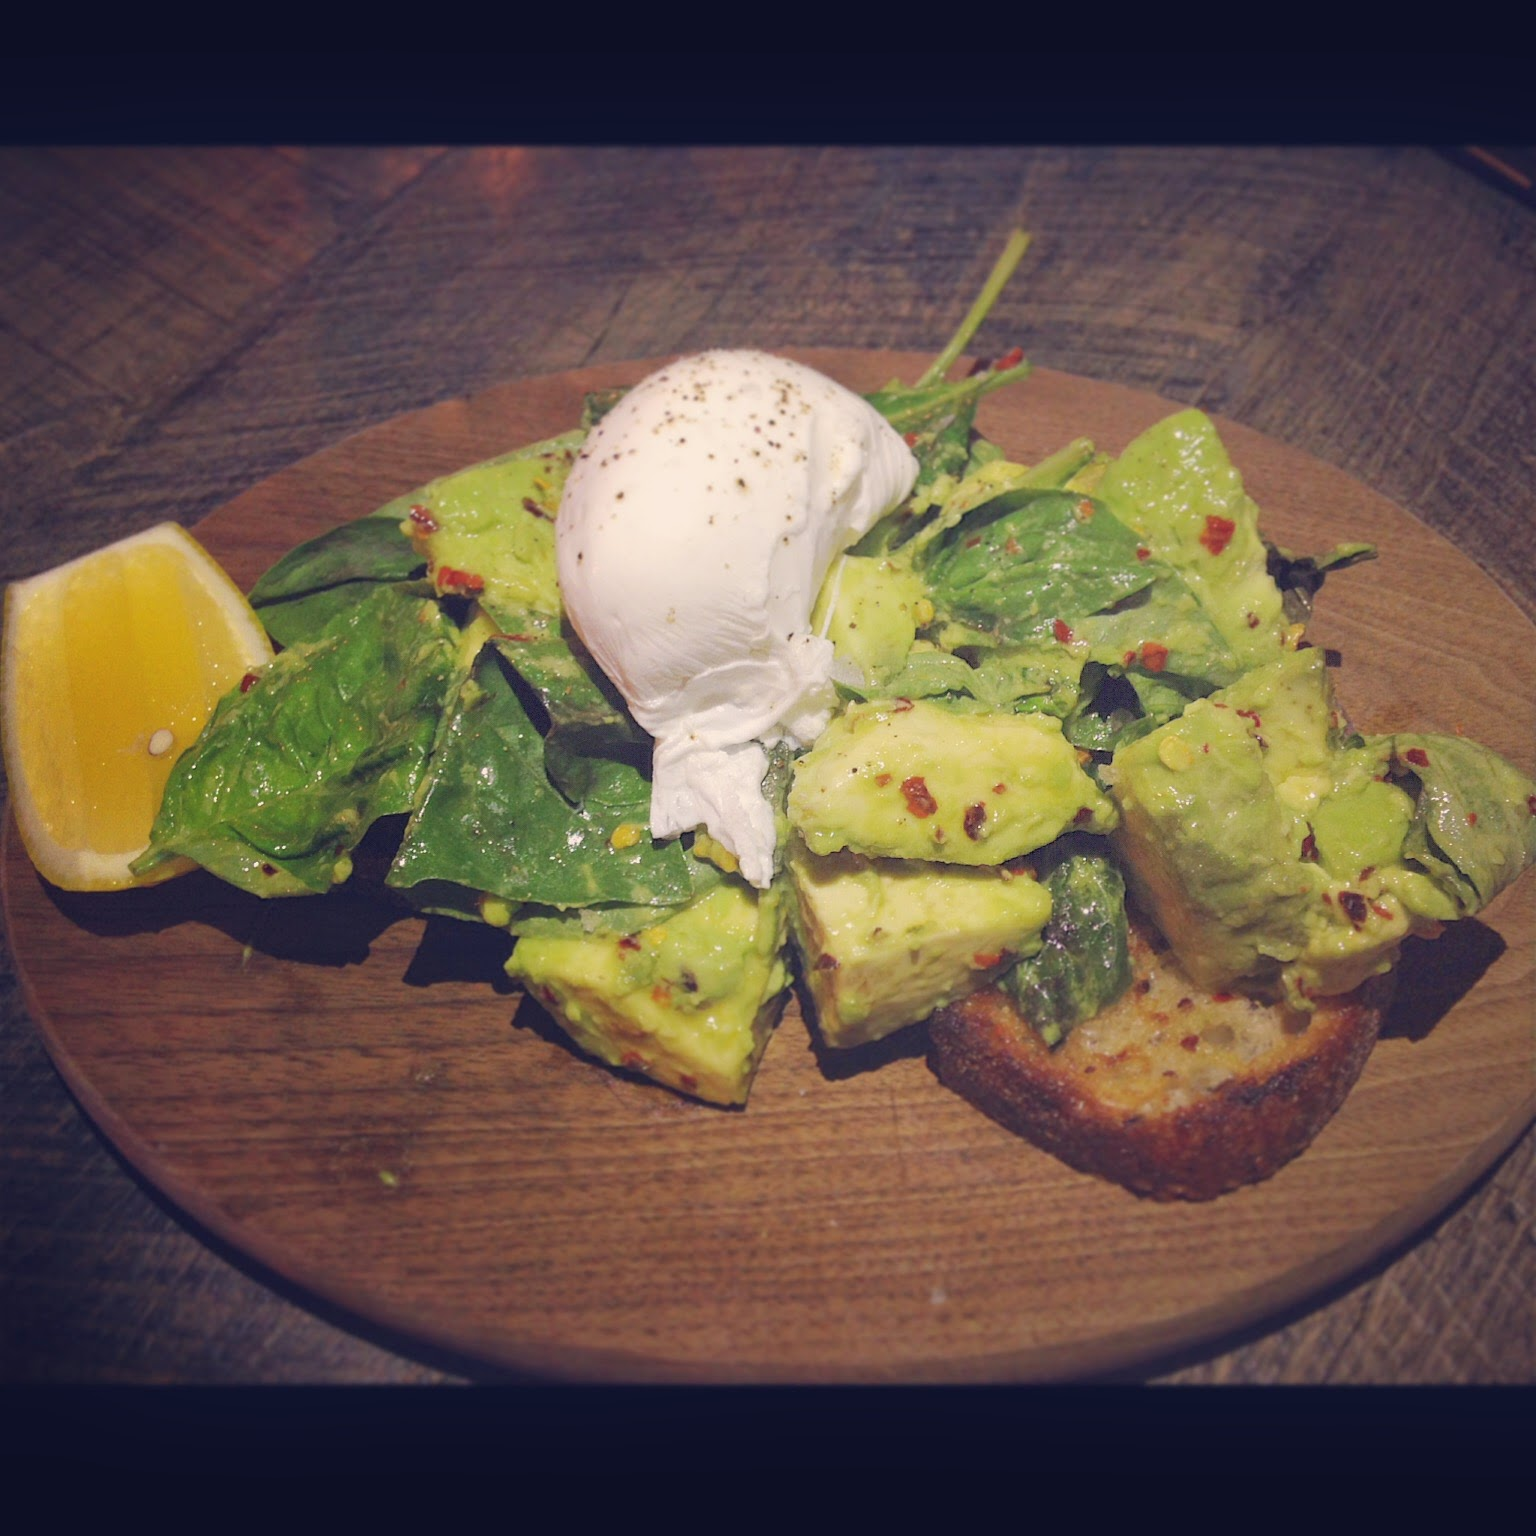 Avocado Toast at Pizza East